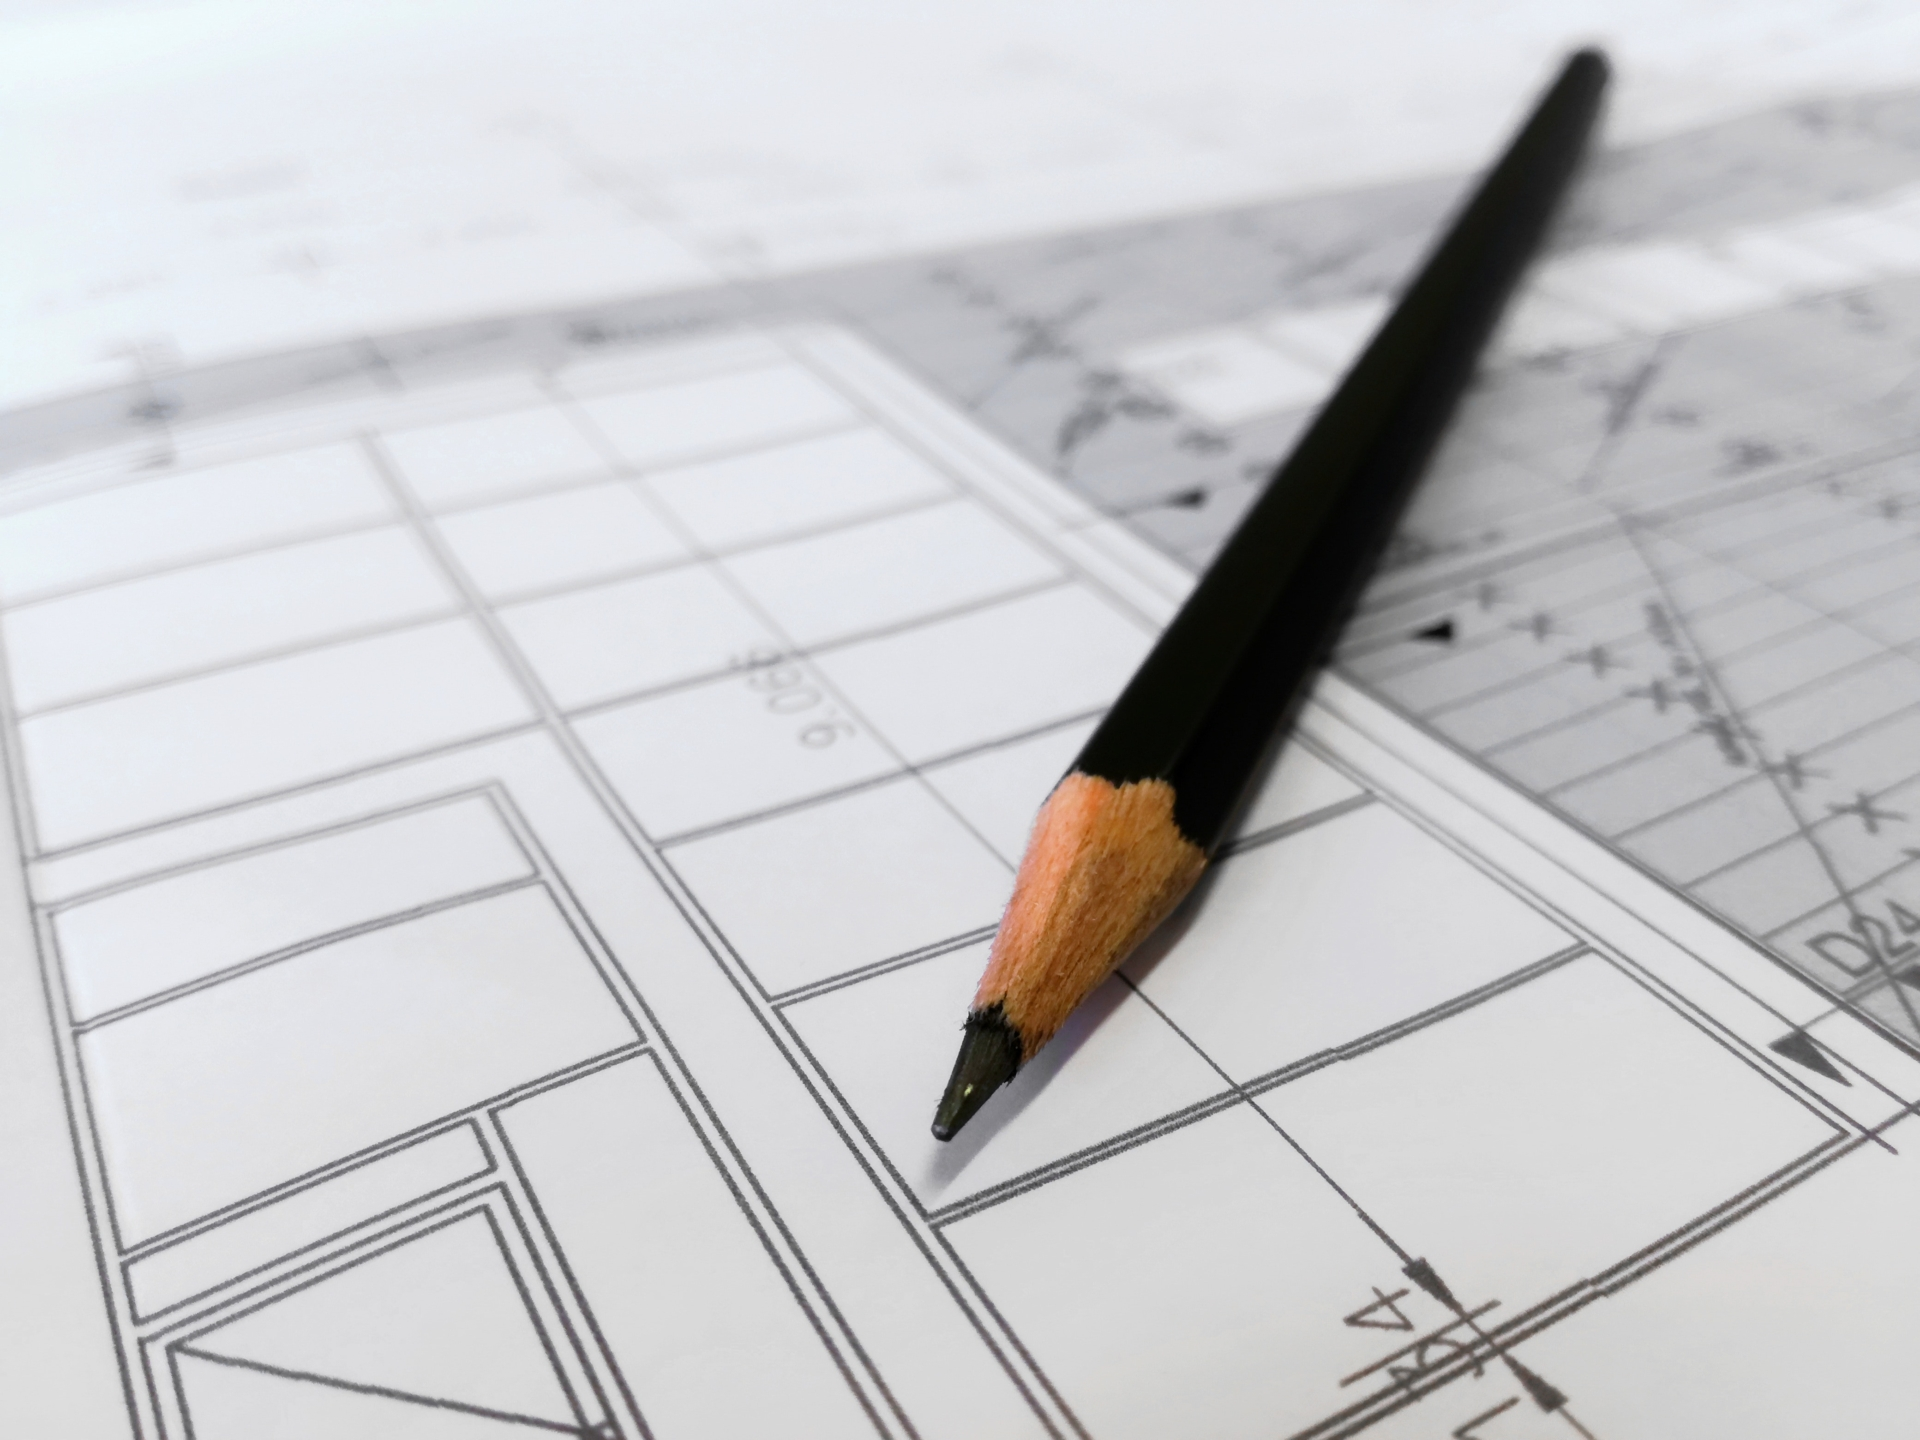 A pencil and plans for house building